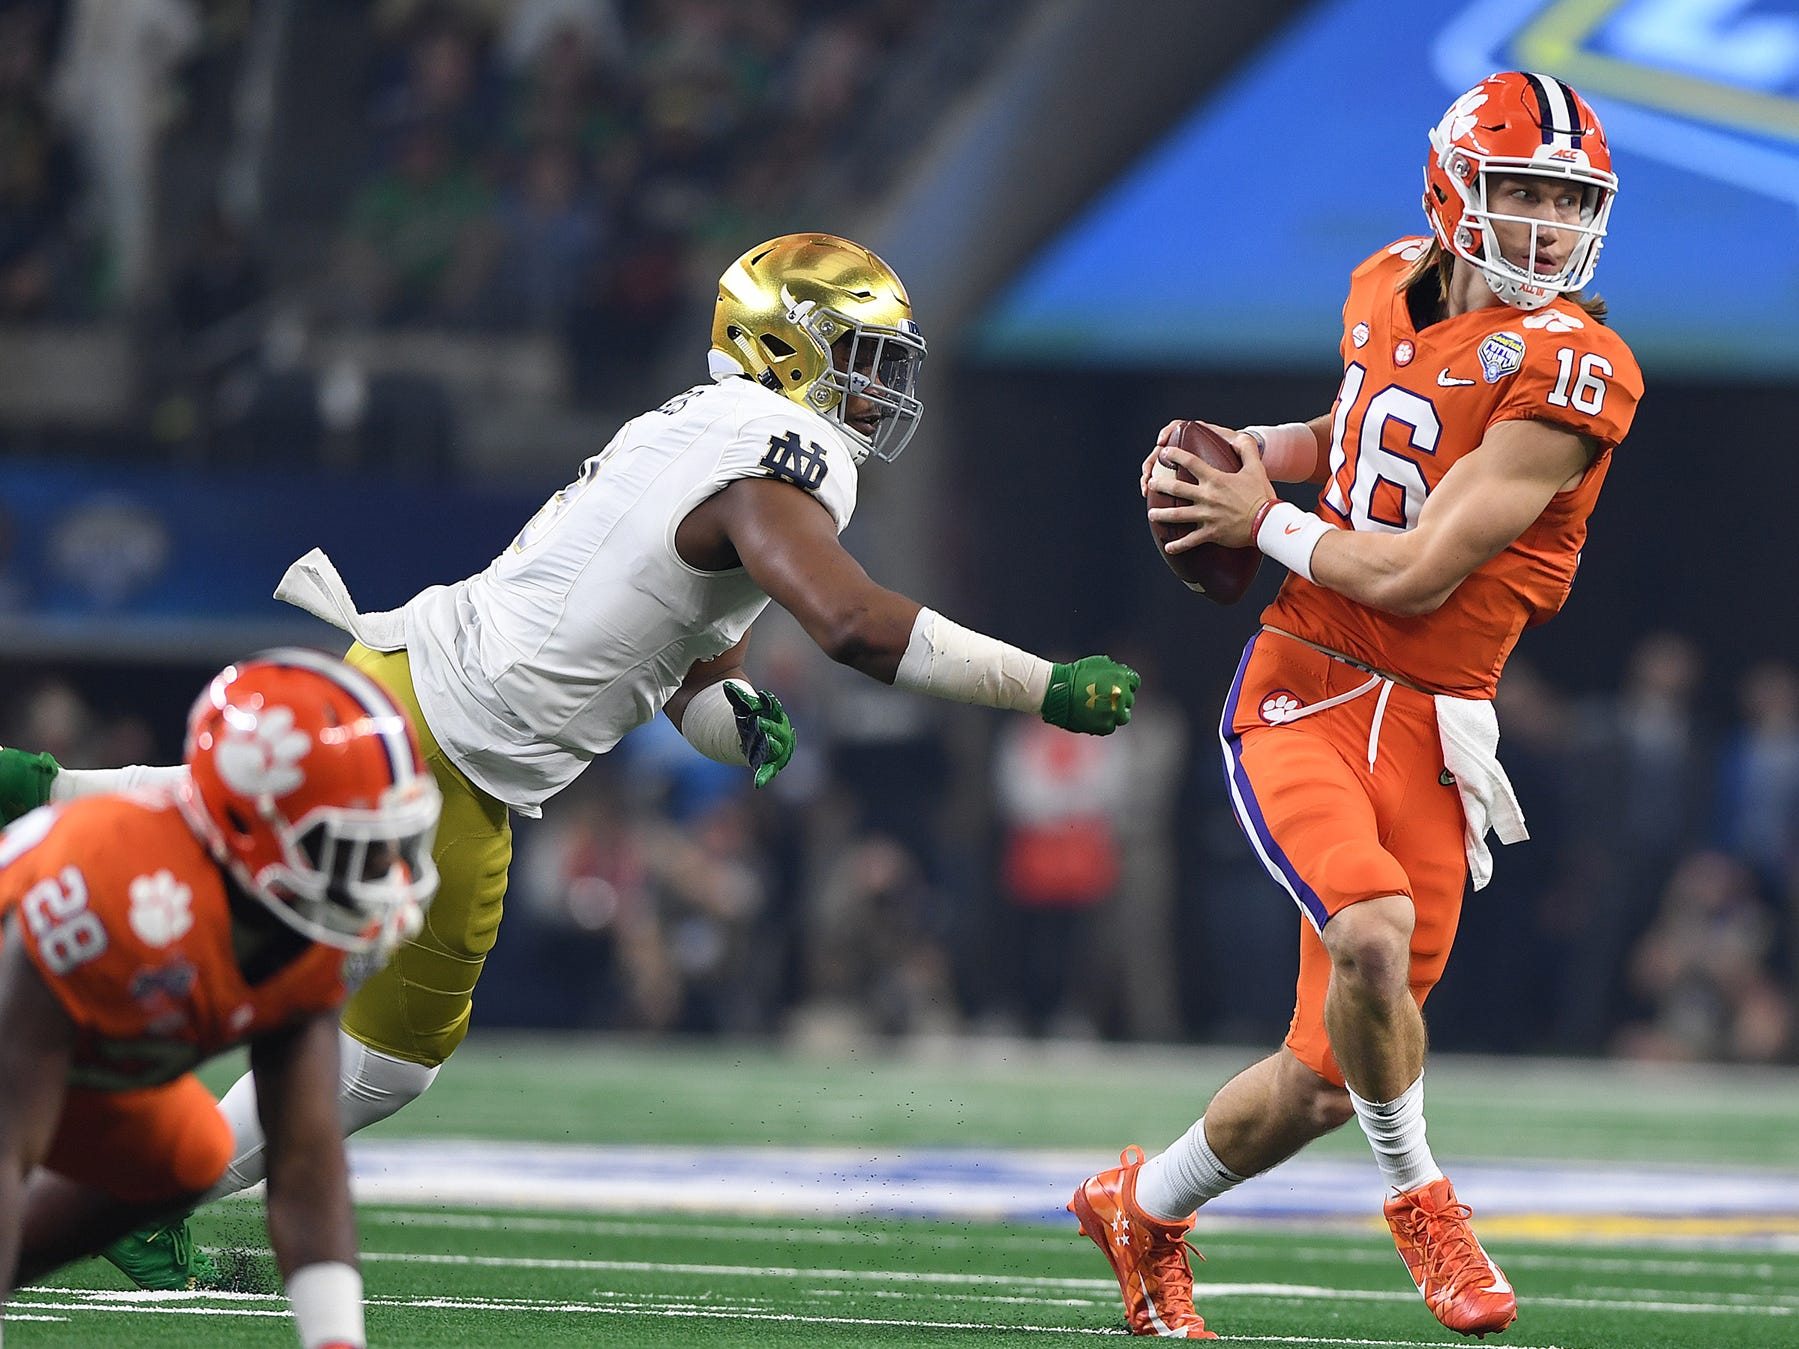 Clemson quarterback Trevor Lawrence (16) scrambles past Notre Dame defensive lineman Daelin Hayes (9) during the 1st quarter of the Goodyear Cotton Bowl at AT&T stadium in Arlington, TX Saturday, December 29, 2018.